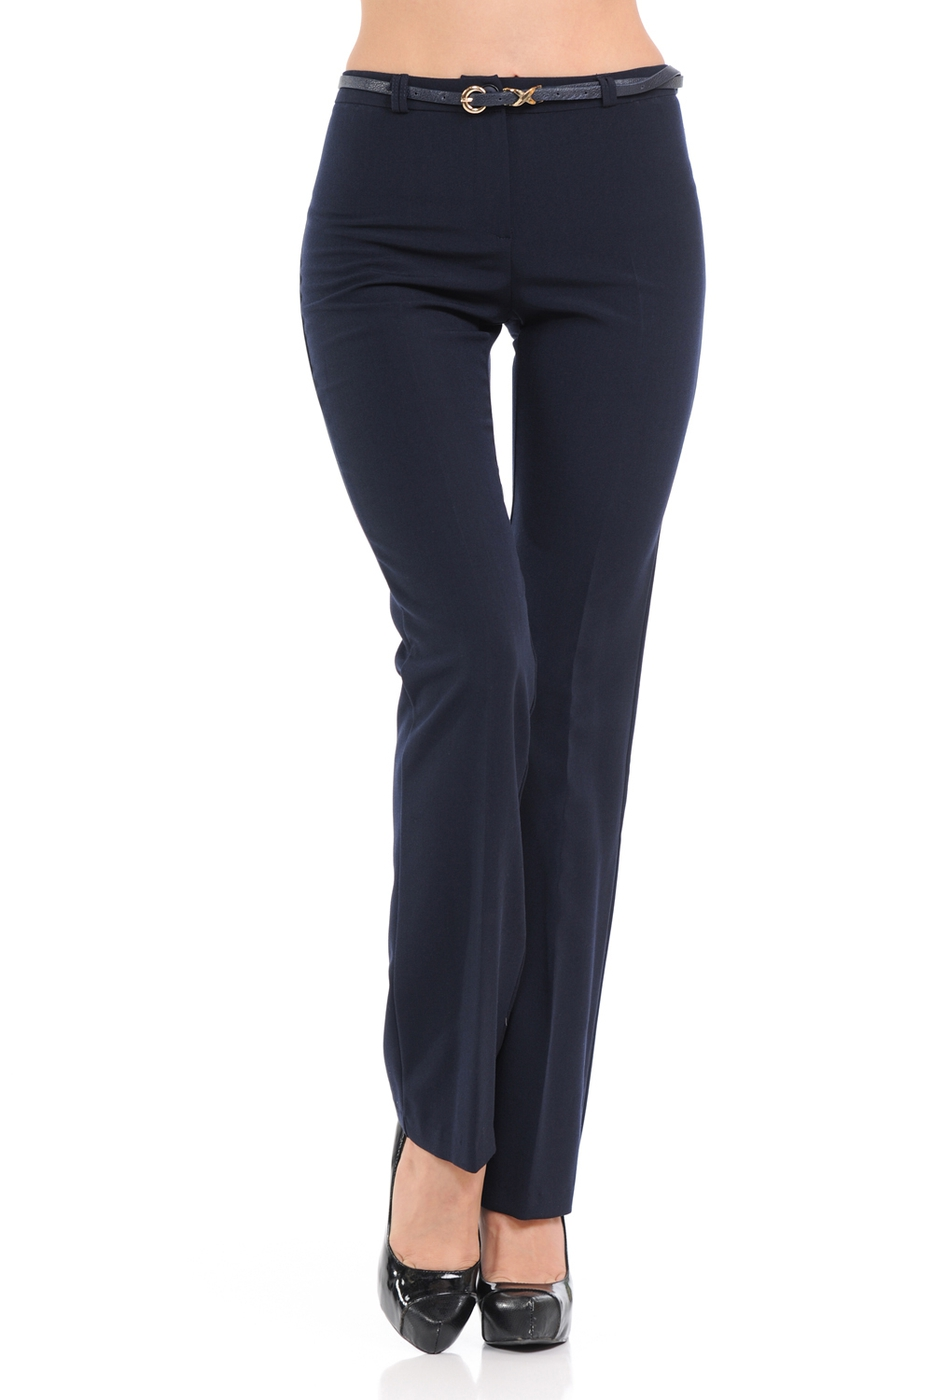 Basic Solid full length pants in a s - orangeshine.com